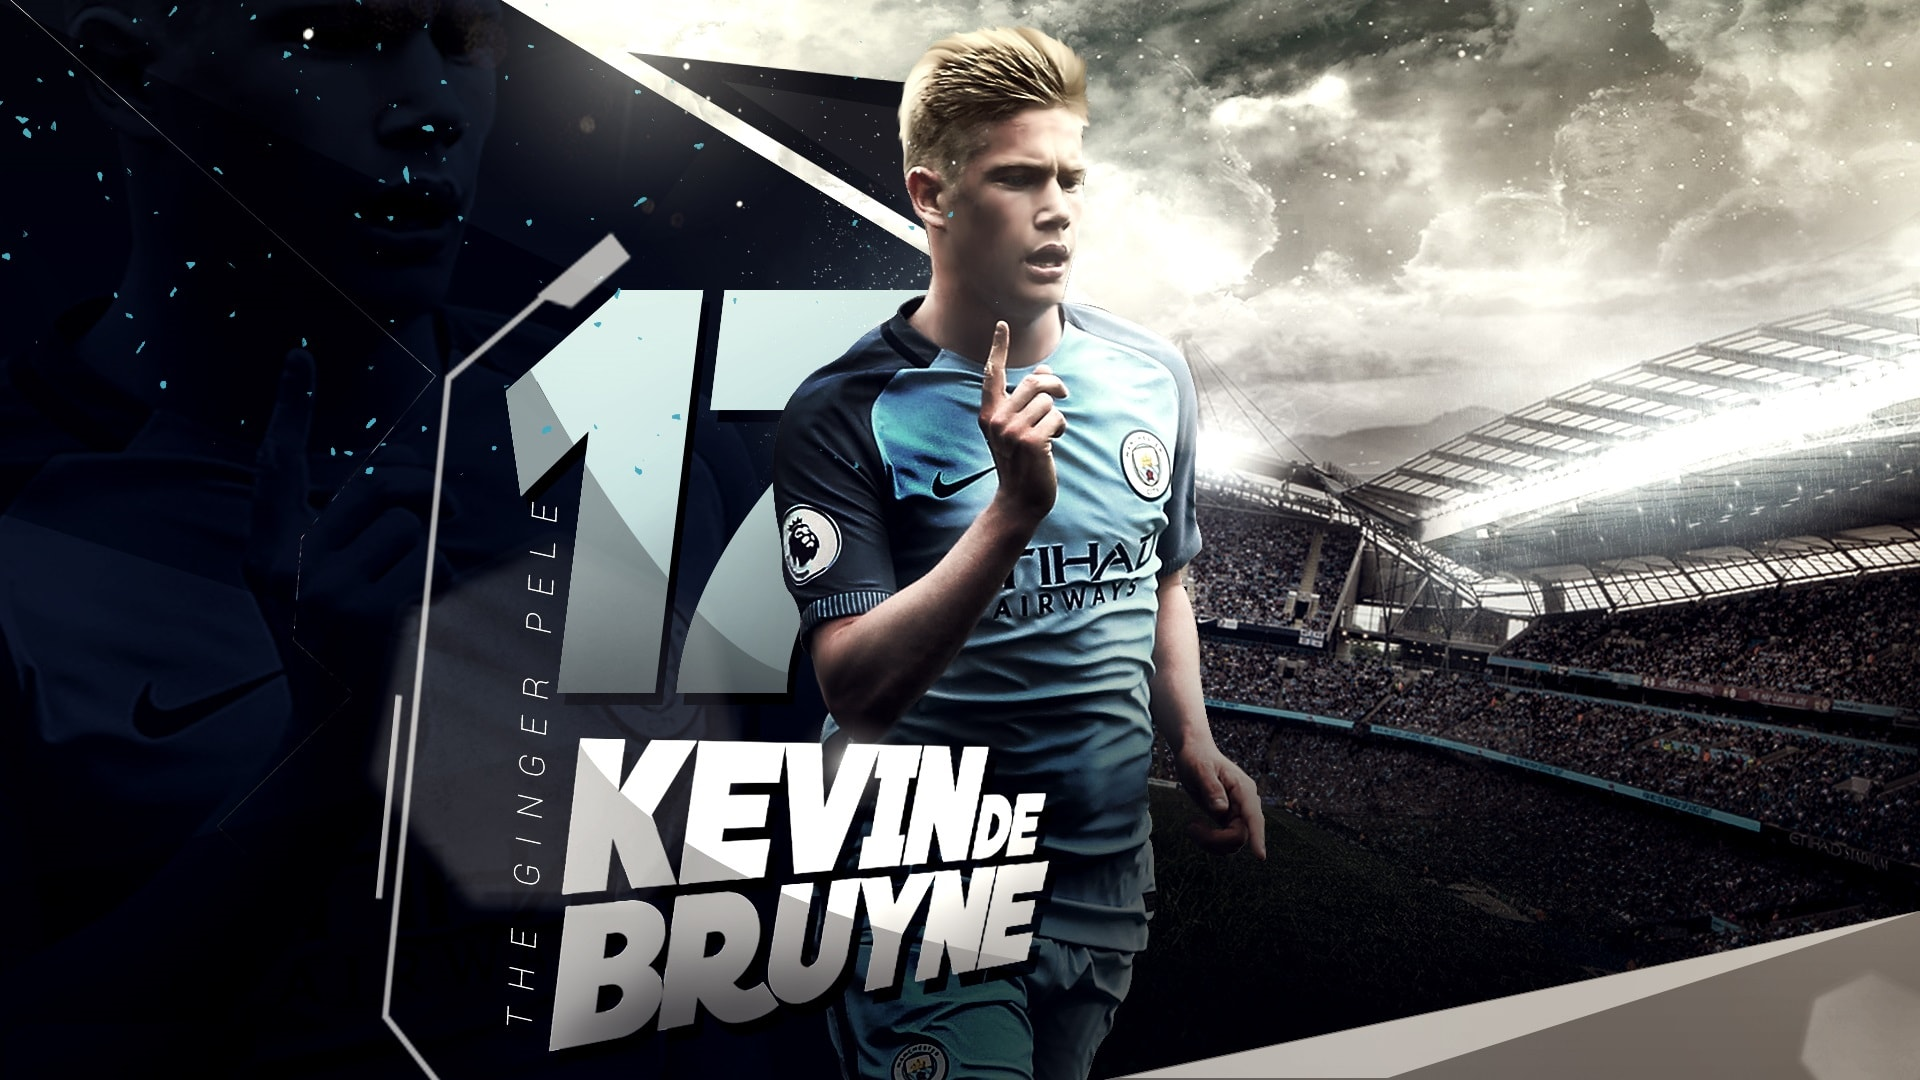 Kevin De Bruyne PC Wallpapers